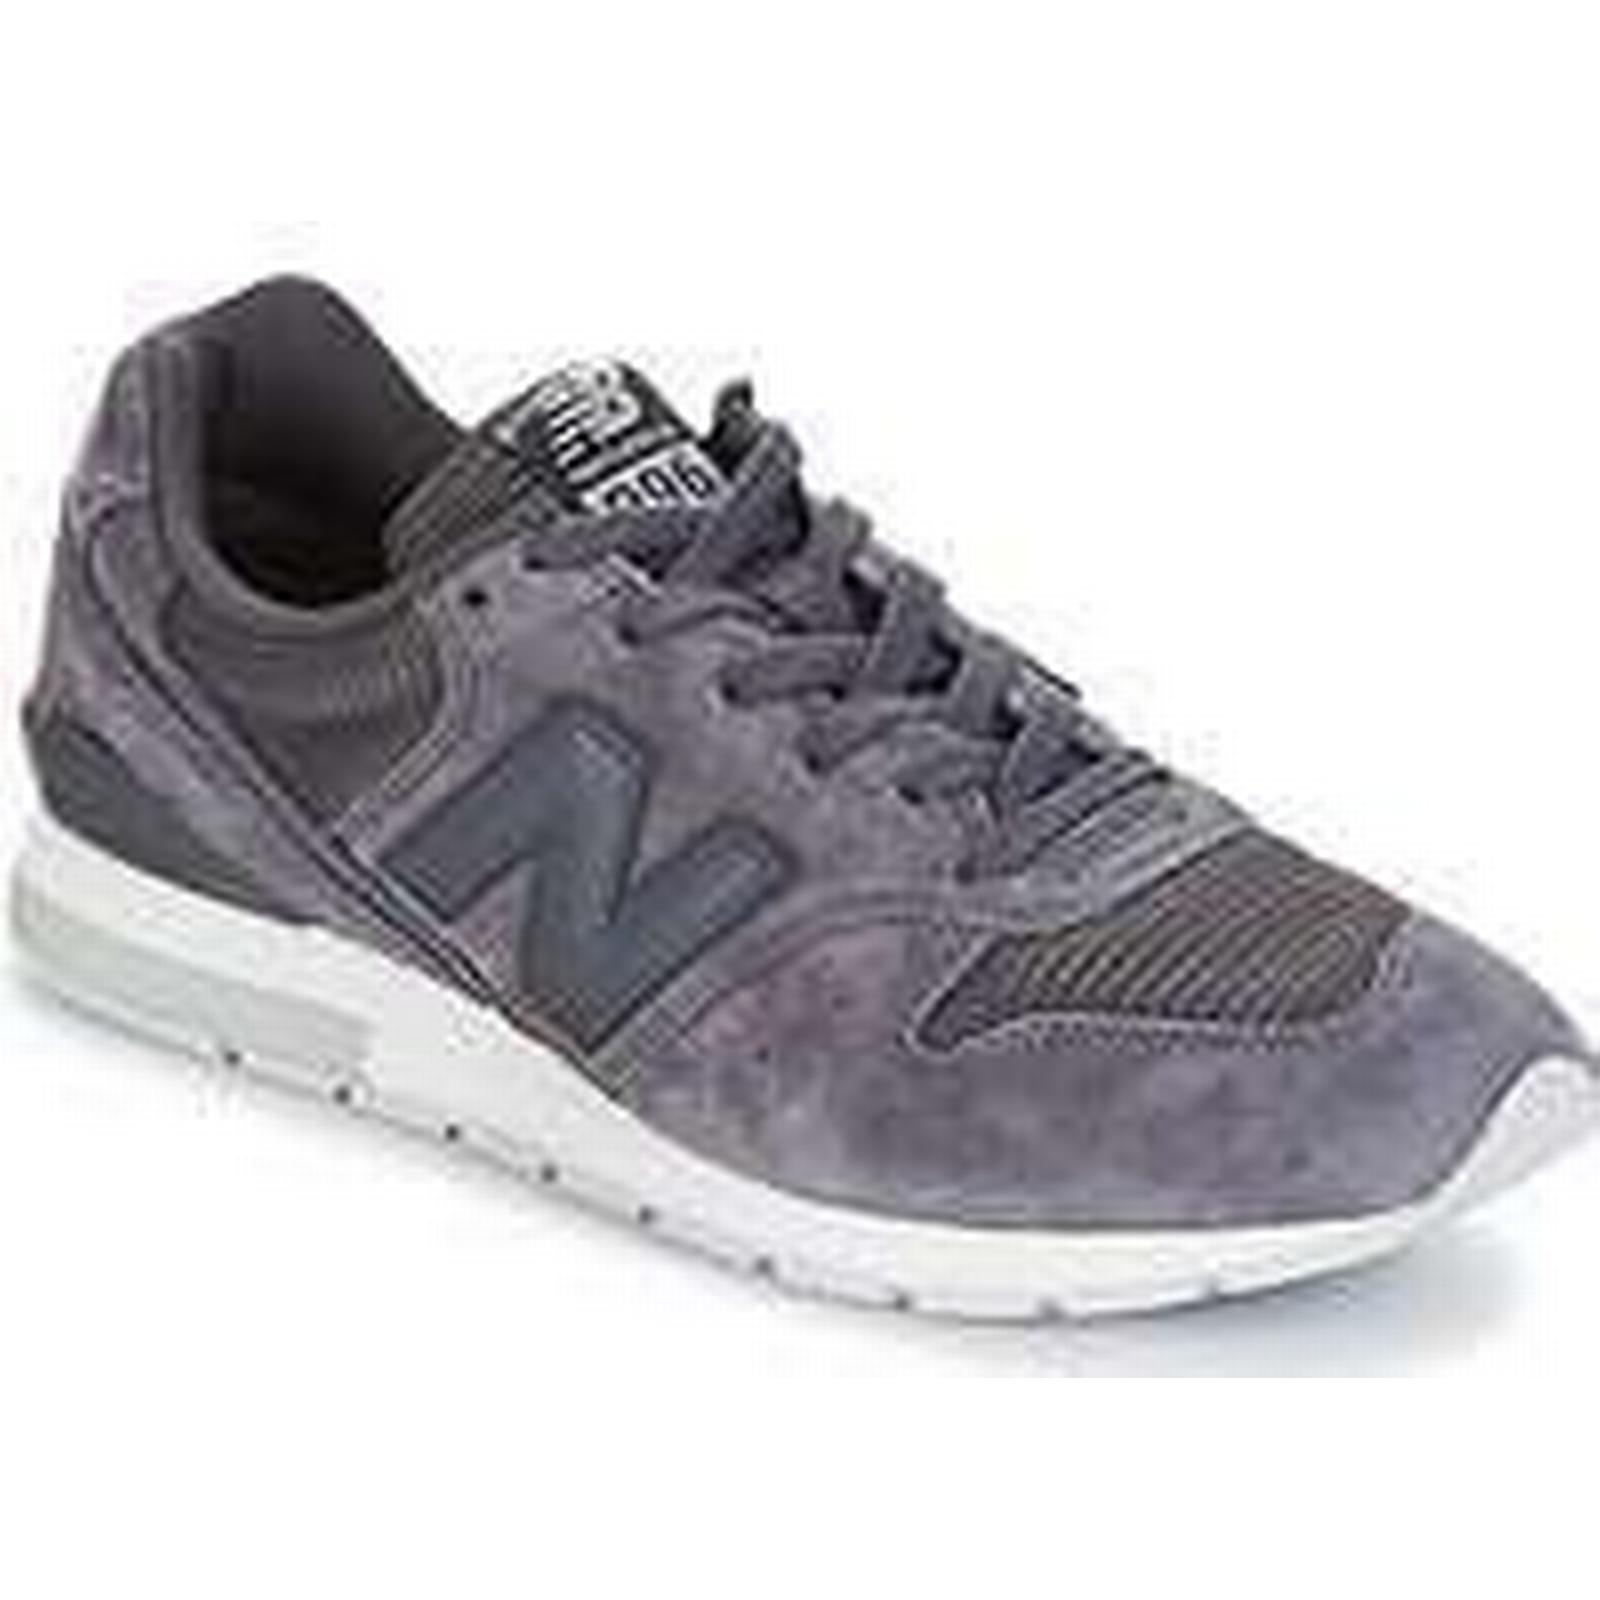 Spartoo.co.uk Shoes New Balance MRL996 men's Shoes Spartoo.co.uk (Trainers) in Beige 09c64a